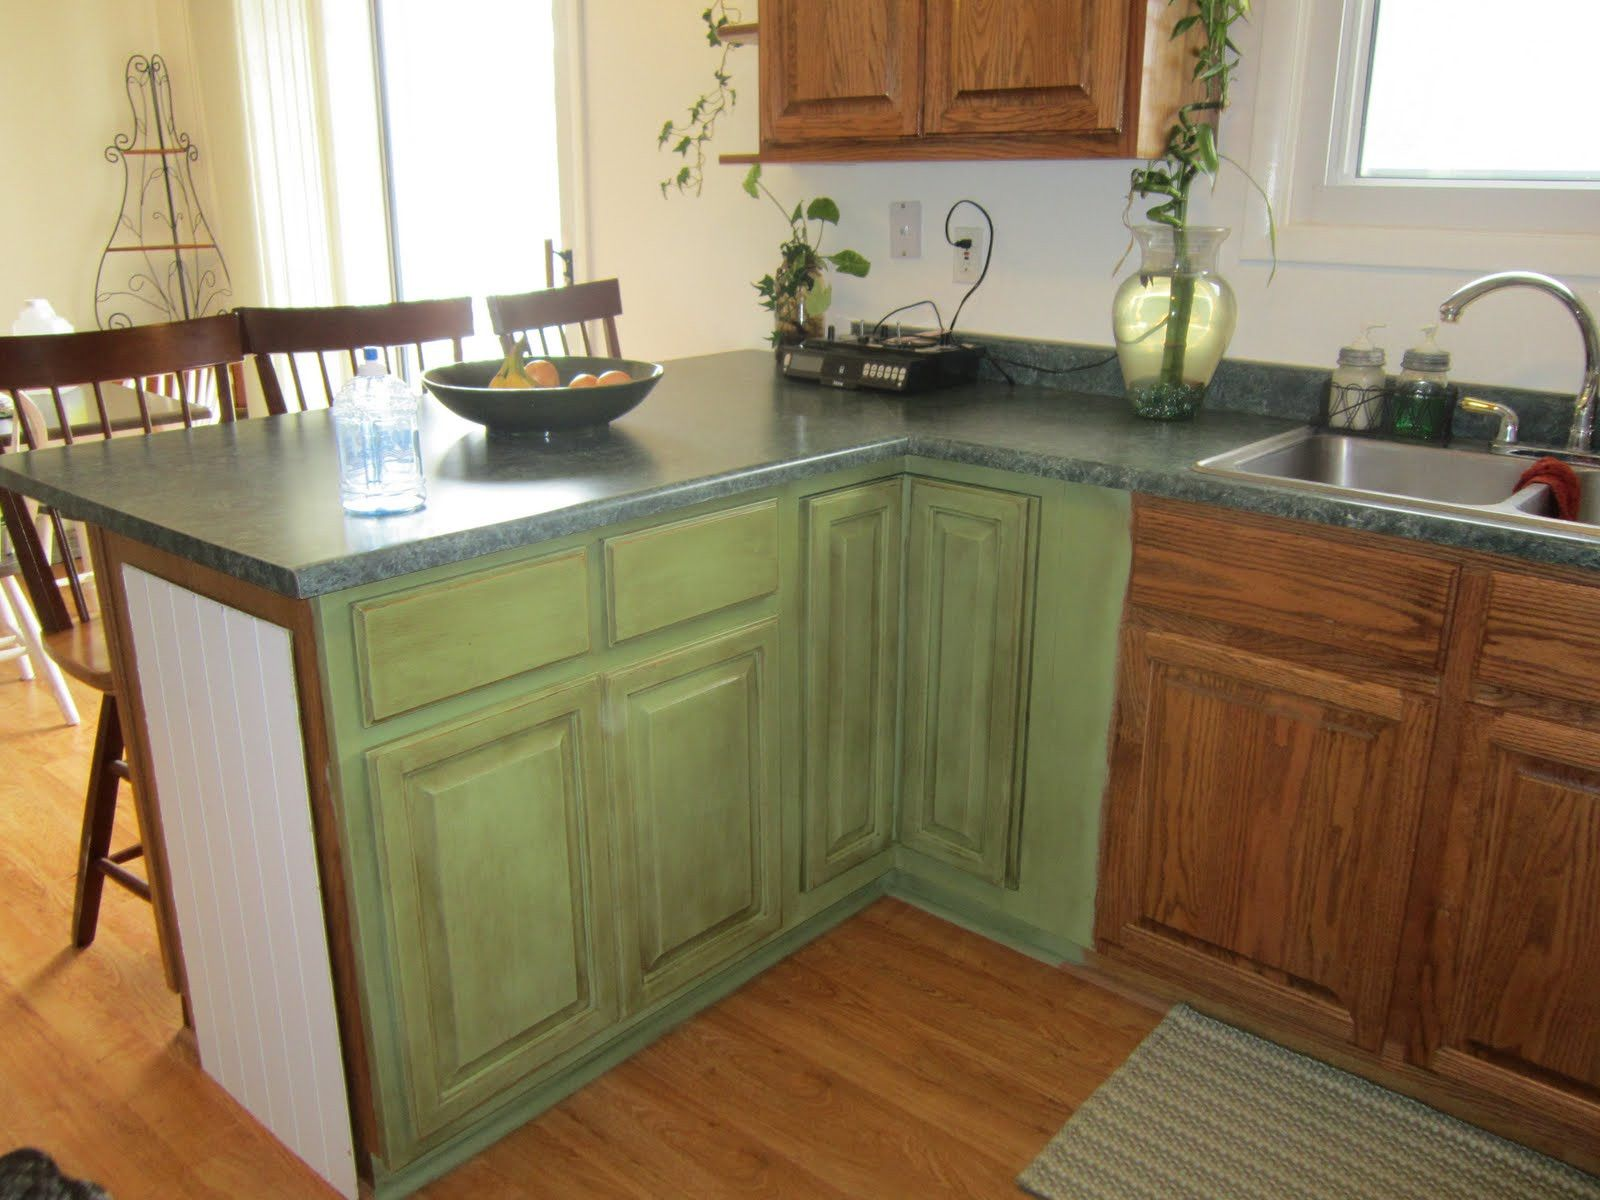 20 looking for used kitchen cabinets for sale corner kitchen cupboard ideas check more at